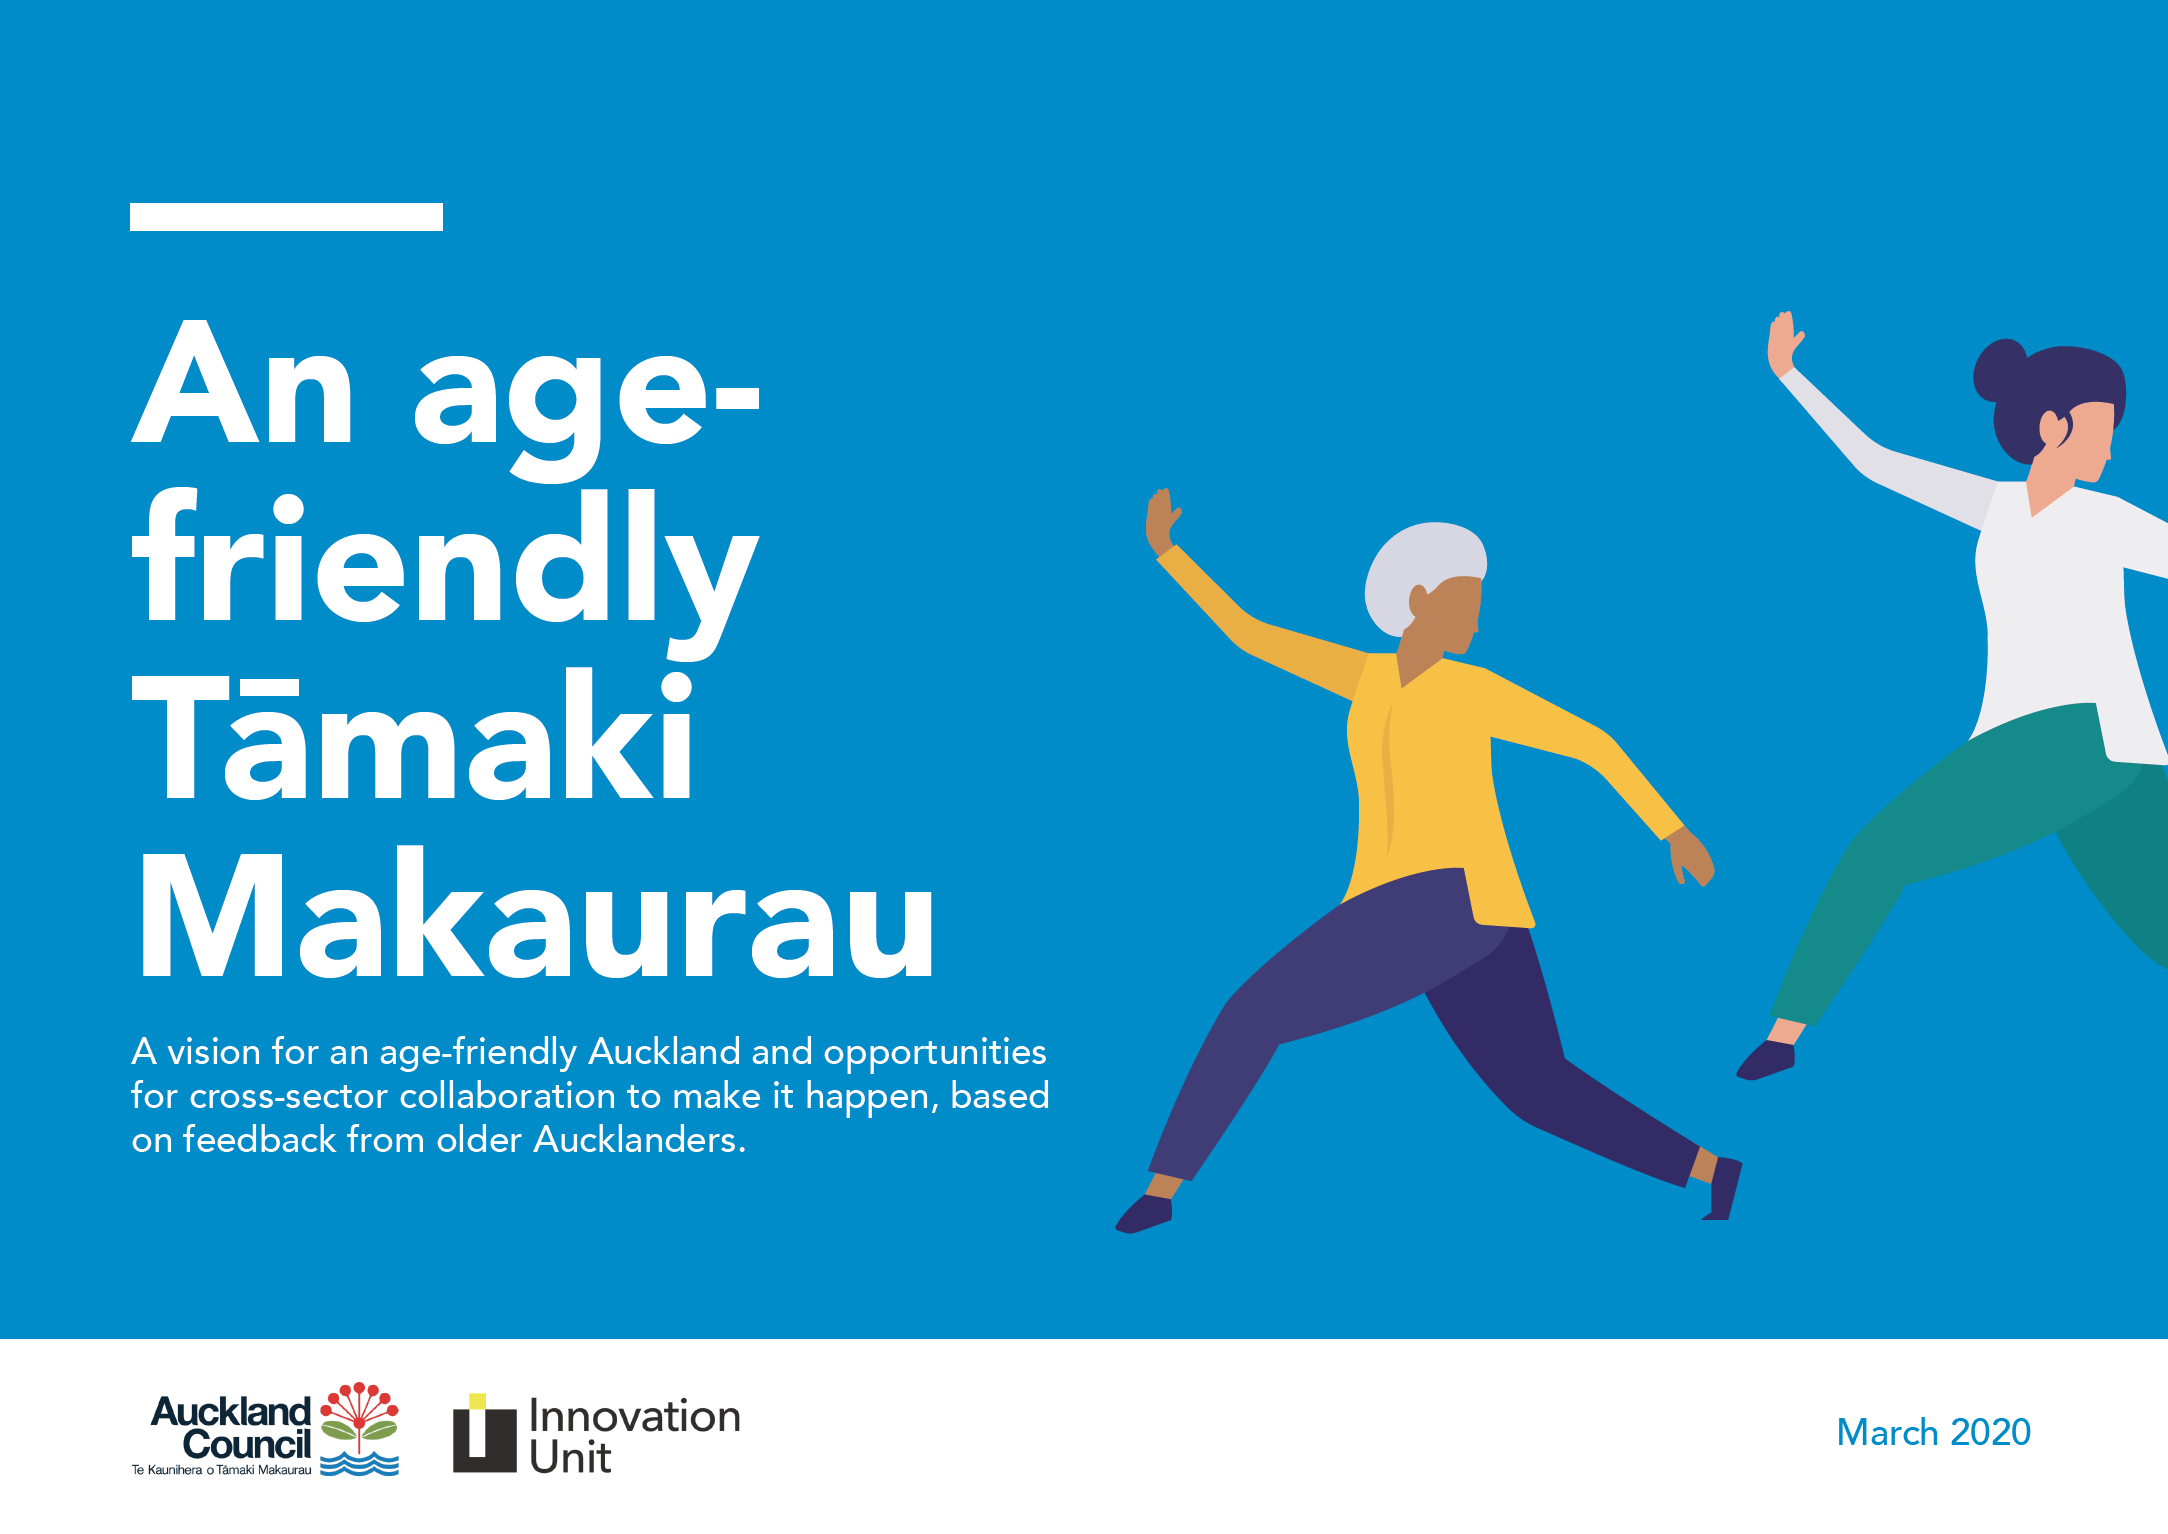 An age-friendly Tāmaki Makaurau